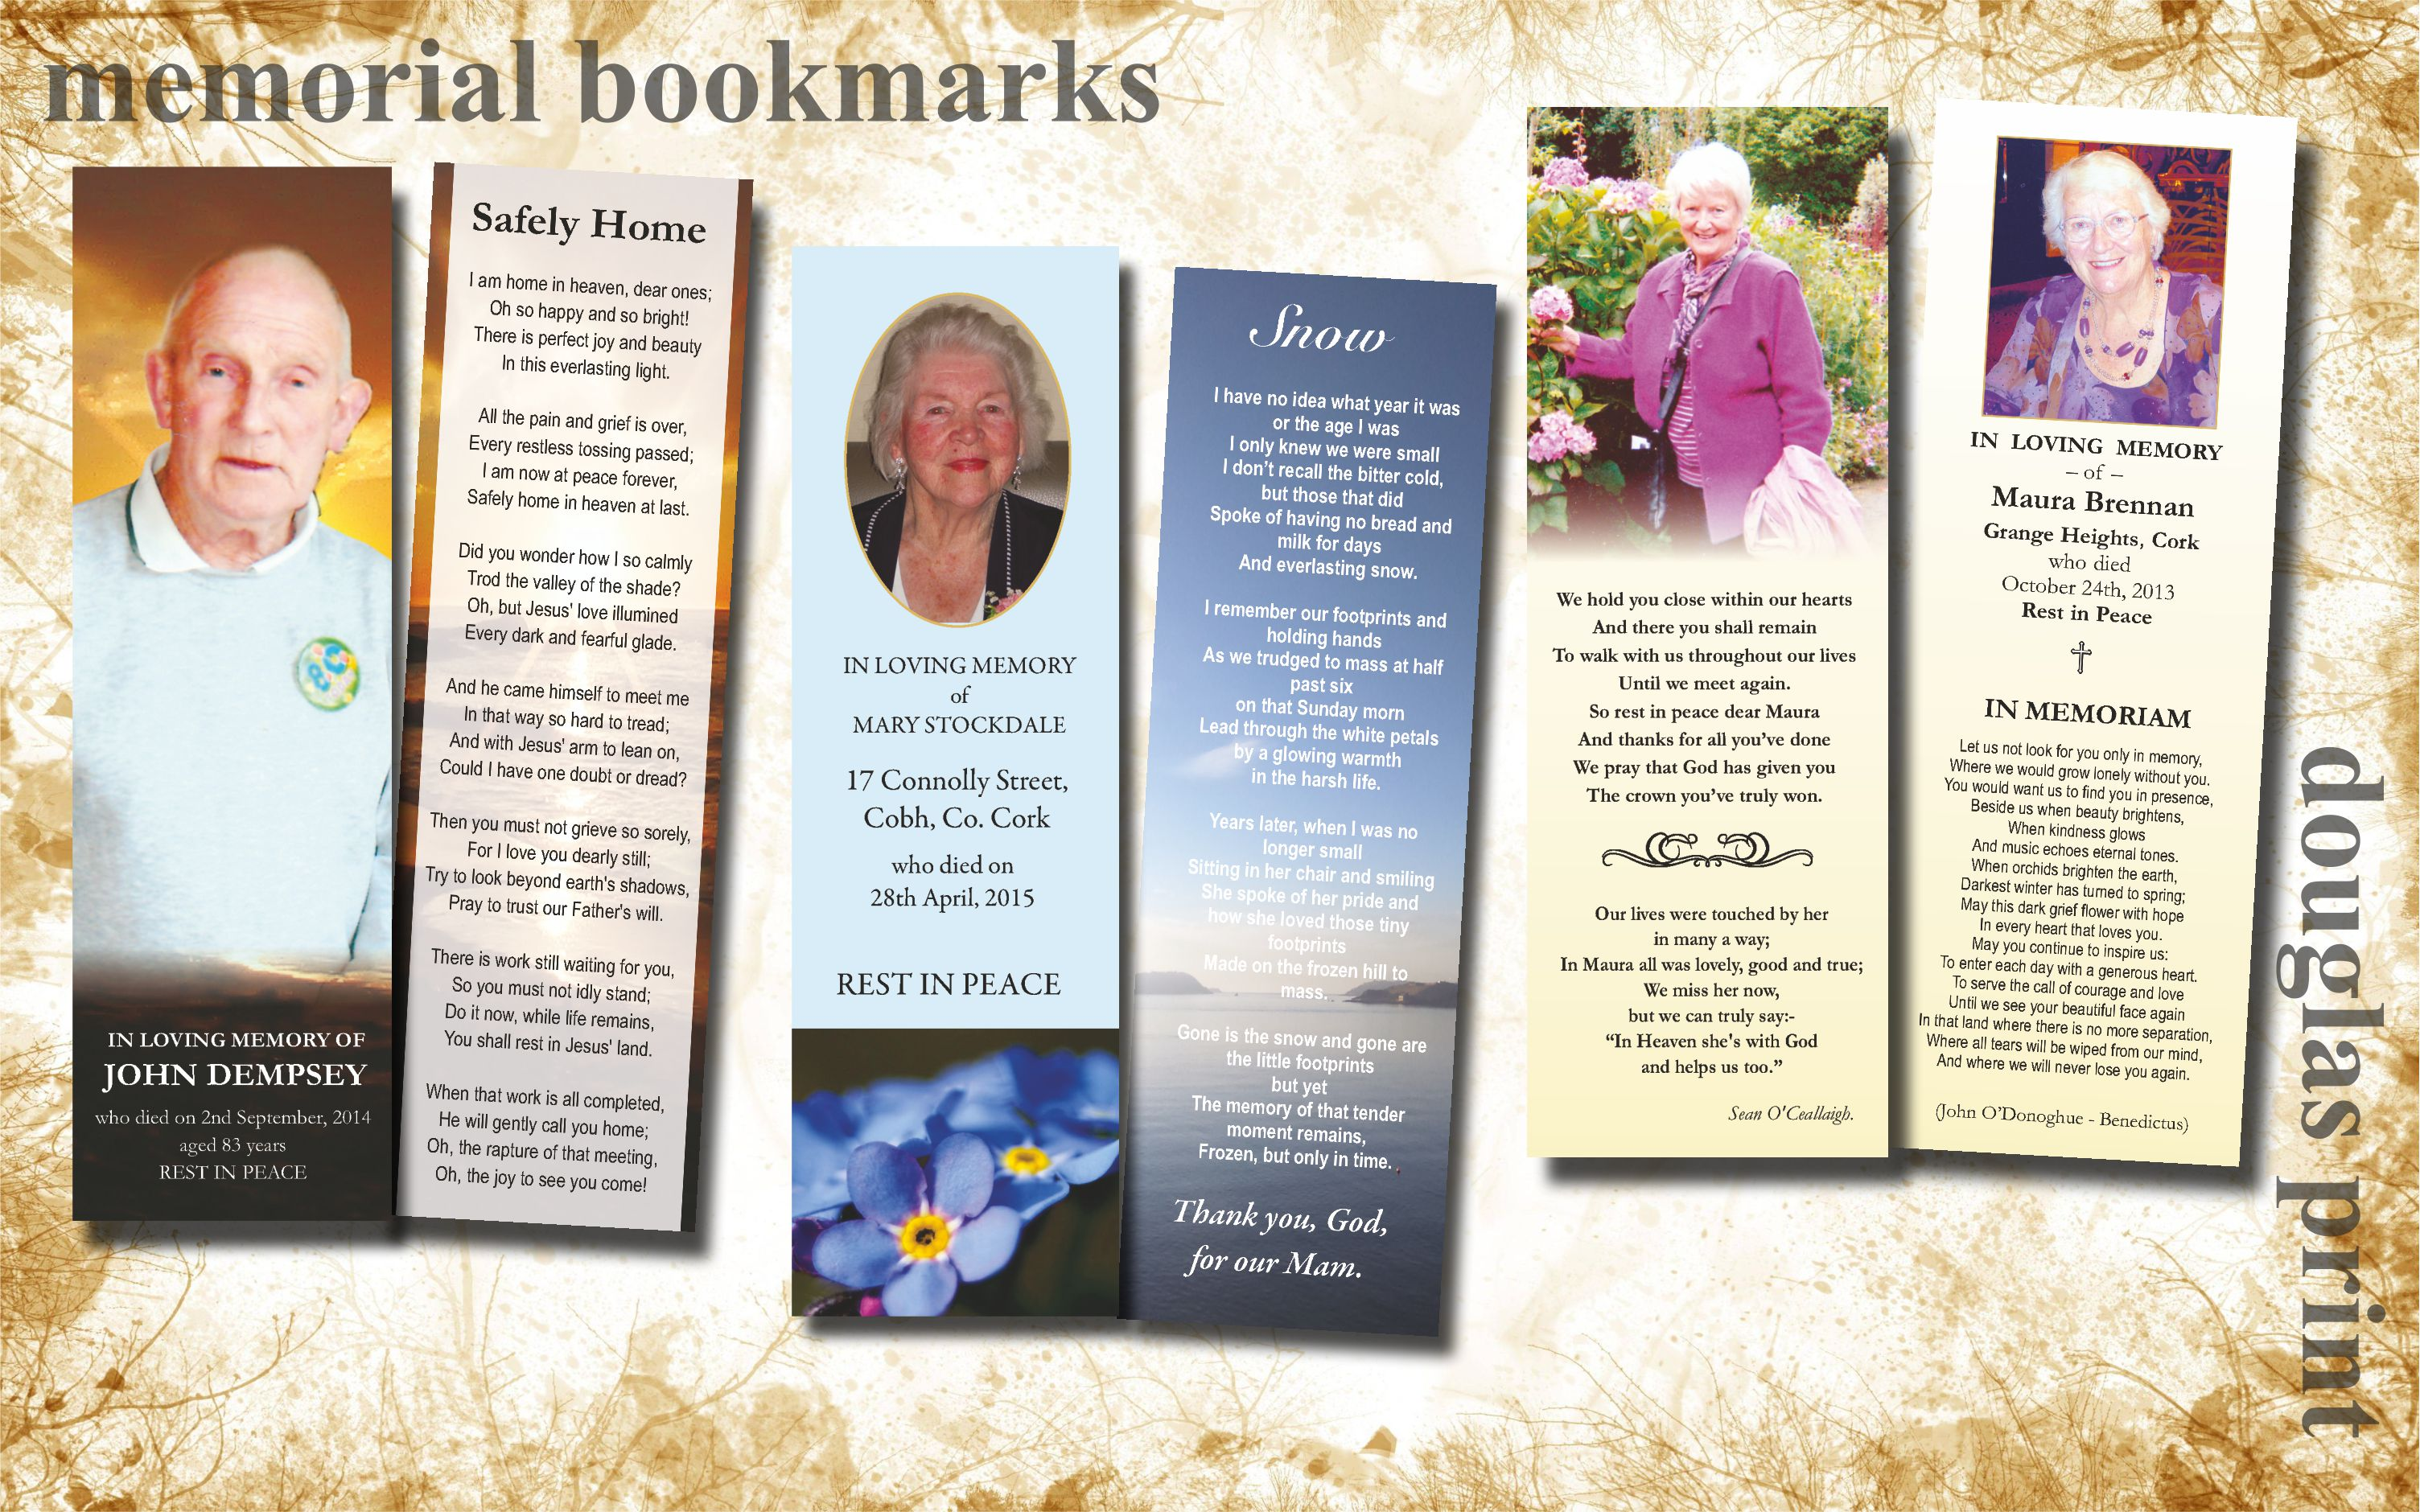 Memorial bookmarks 21 obituary card templates free for Funeral bookmarks template free